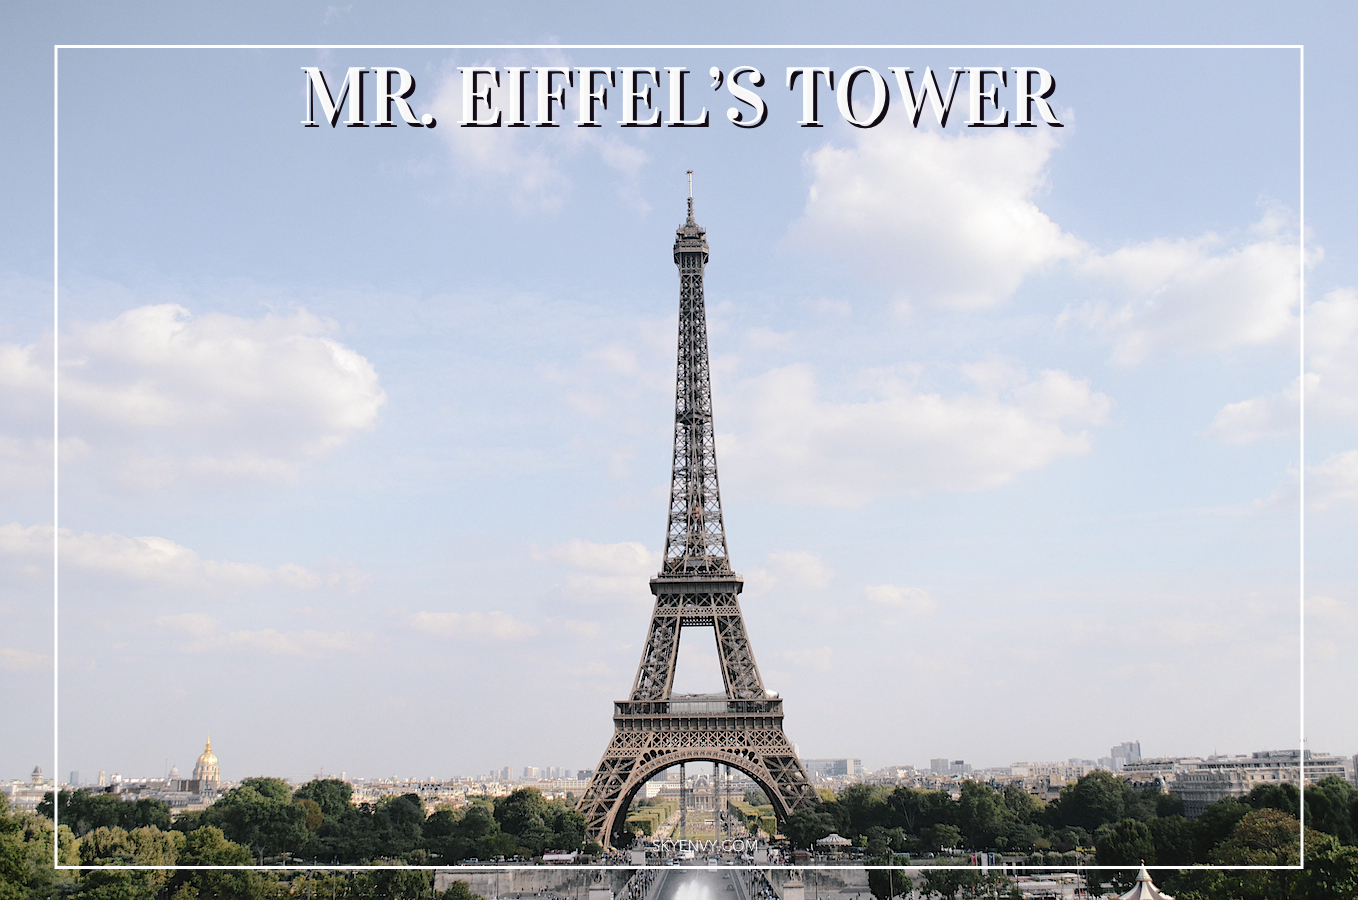 Mr. Eiffel's Tower